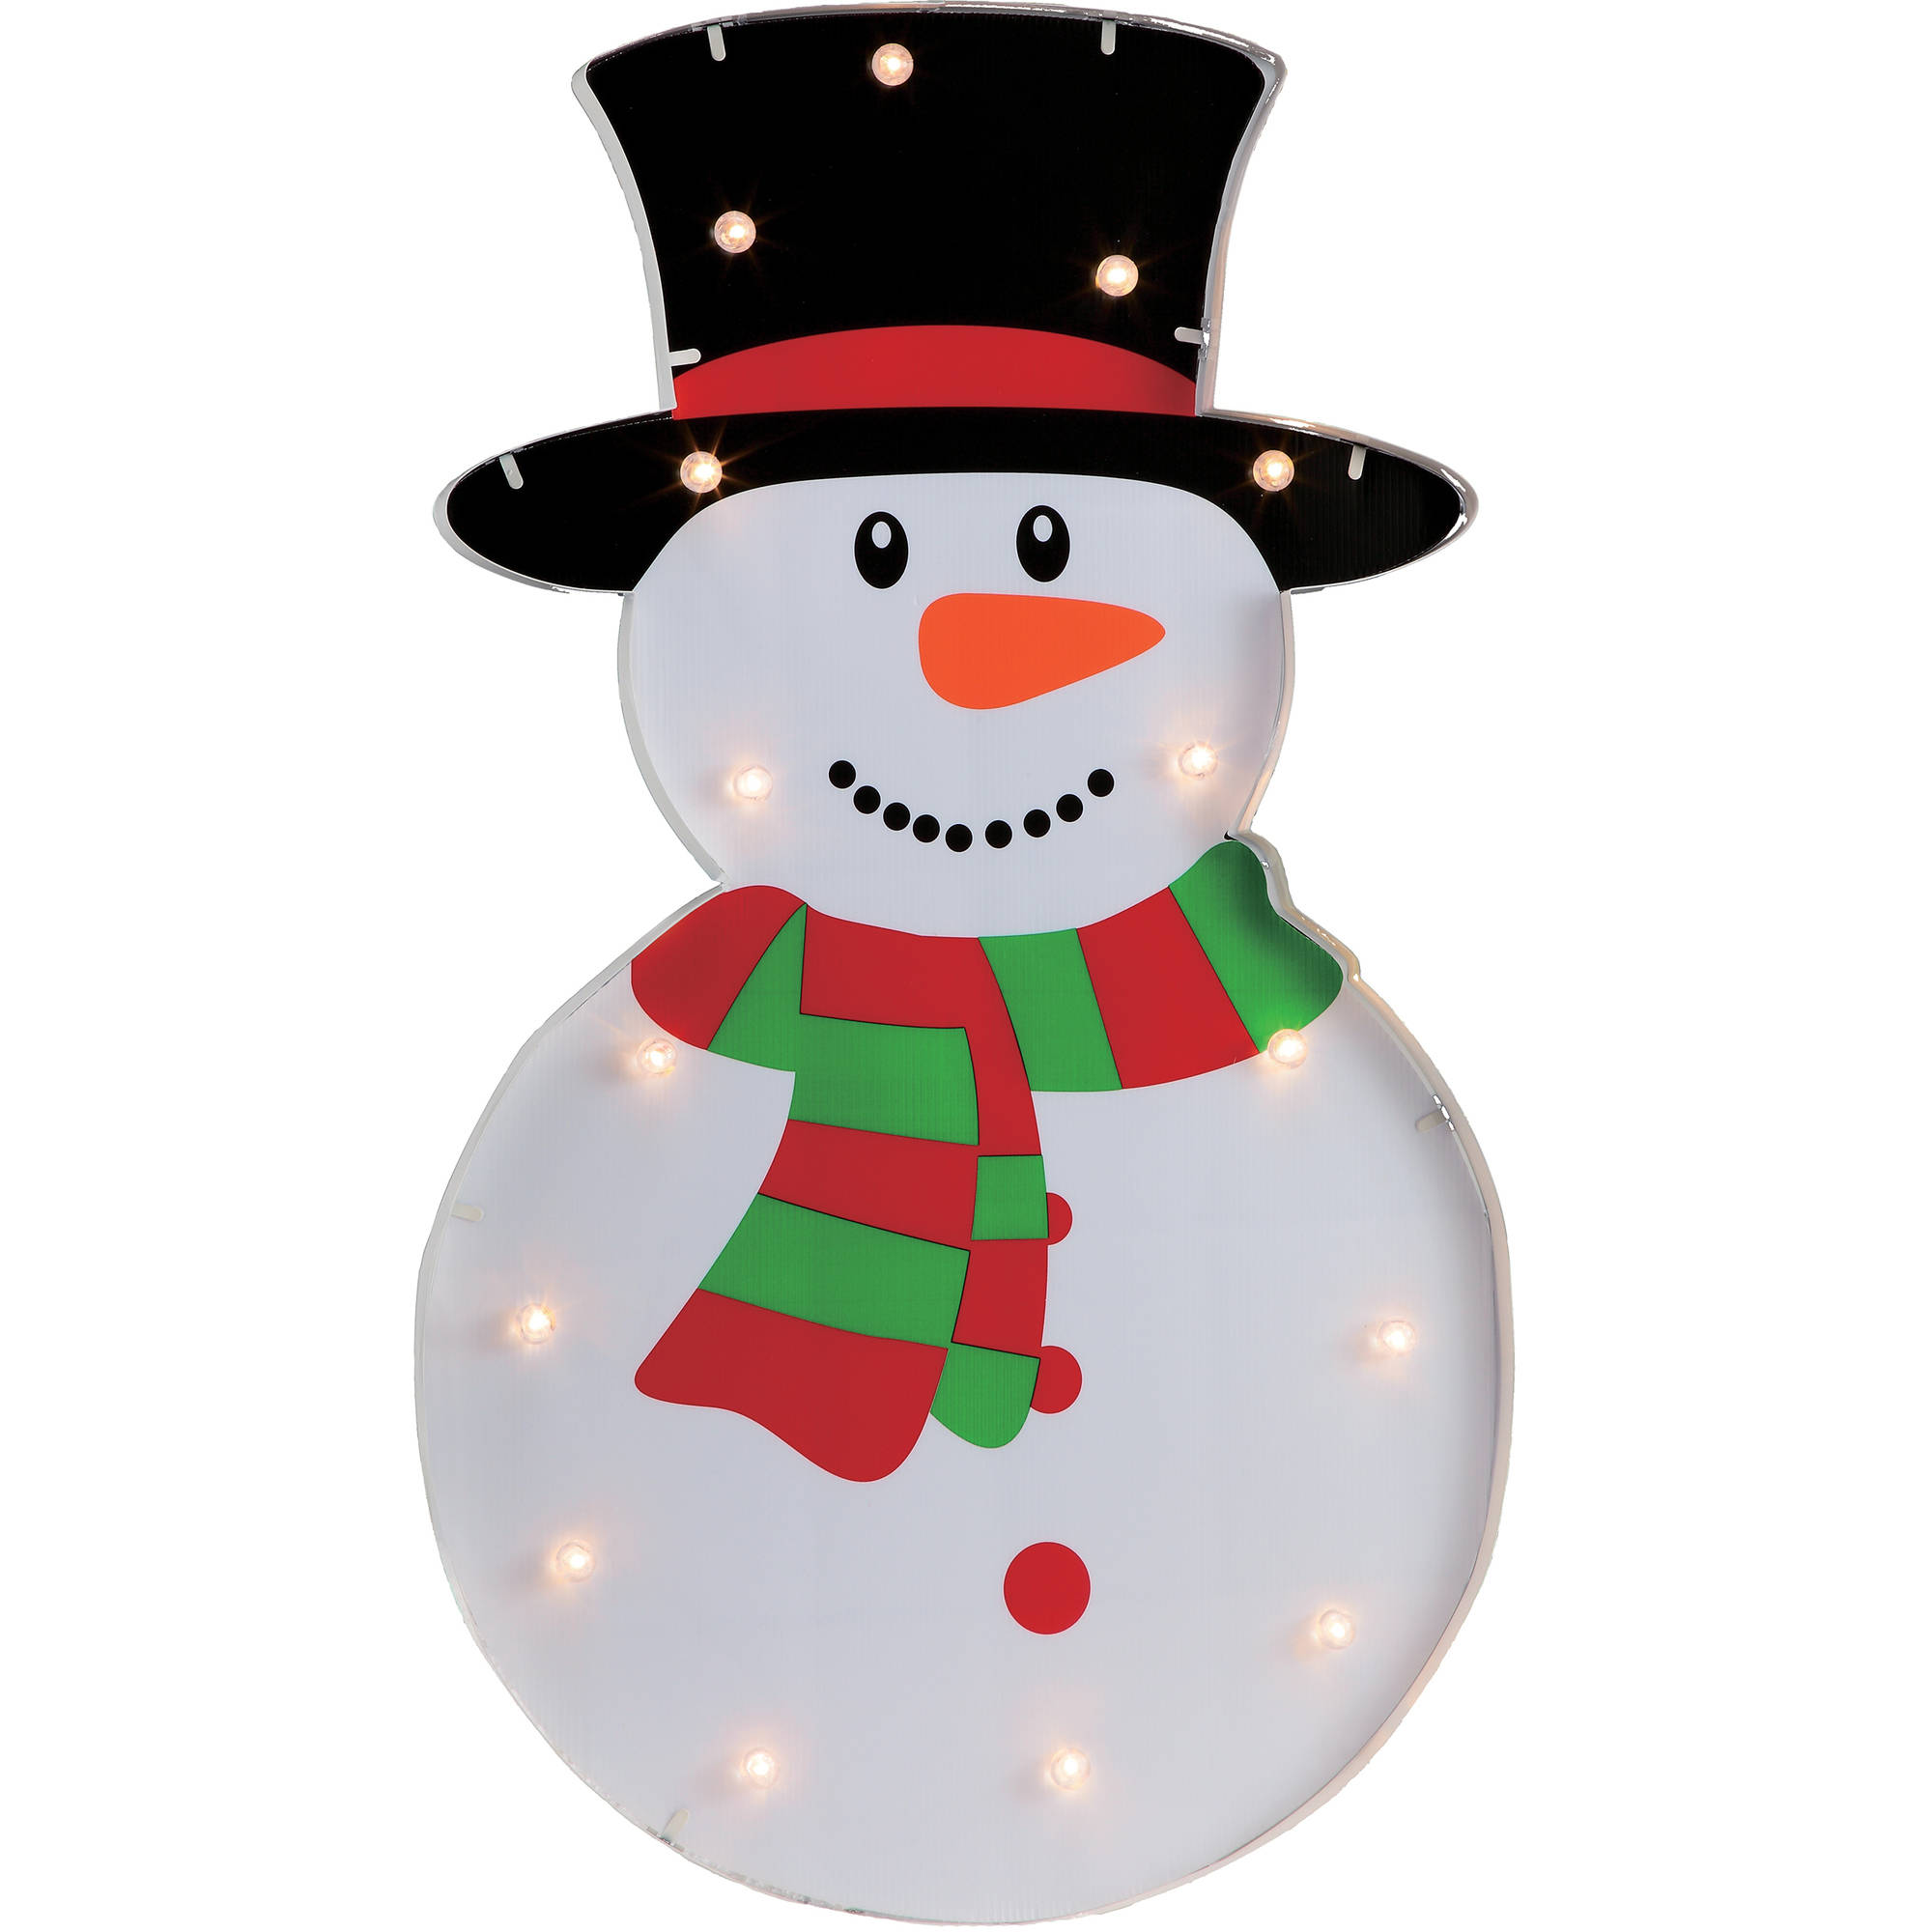 Holiday Time Christmas Decor 36 Marquee Battery Operated Snowman with 15 Warm White LED Lights